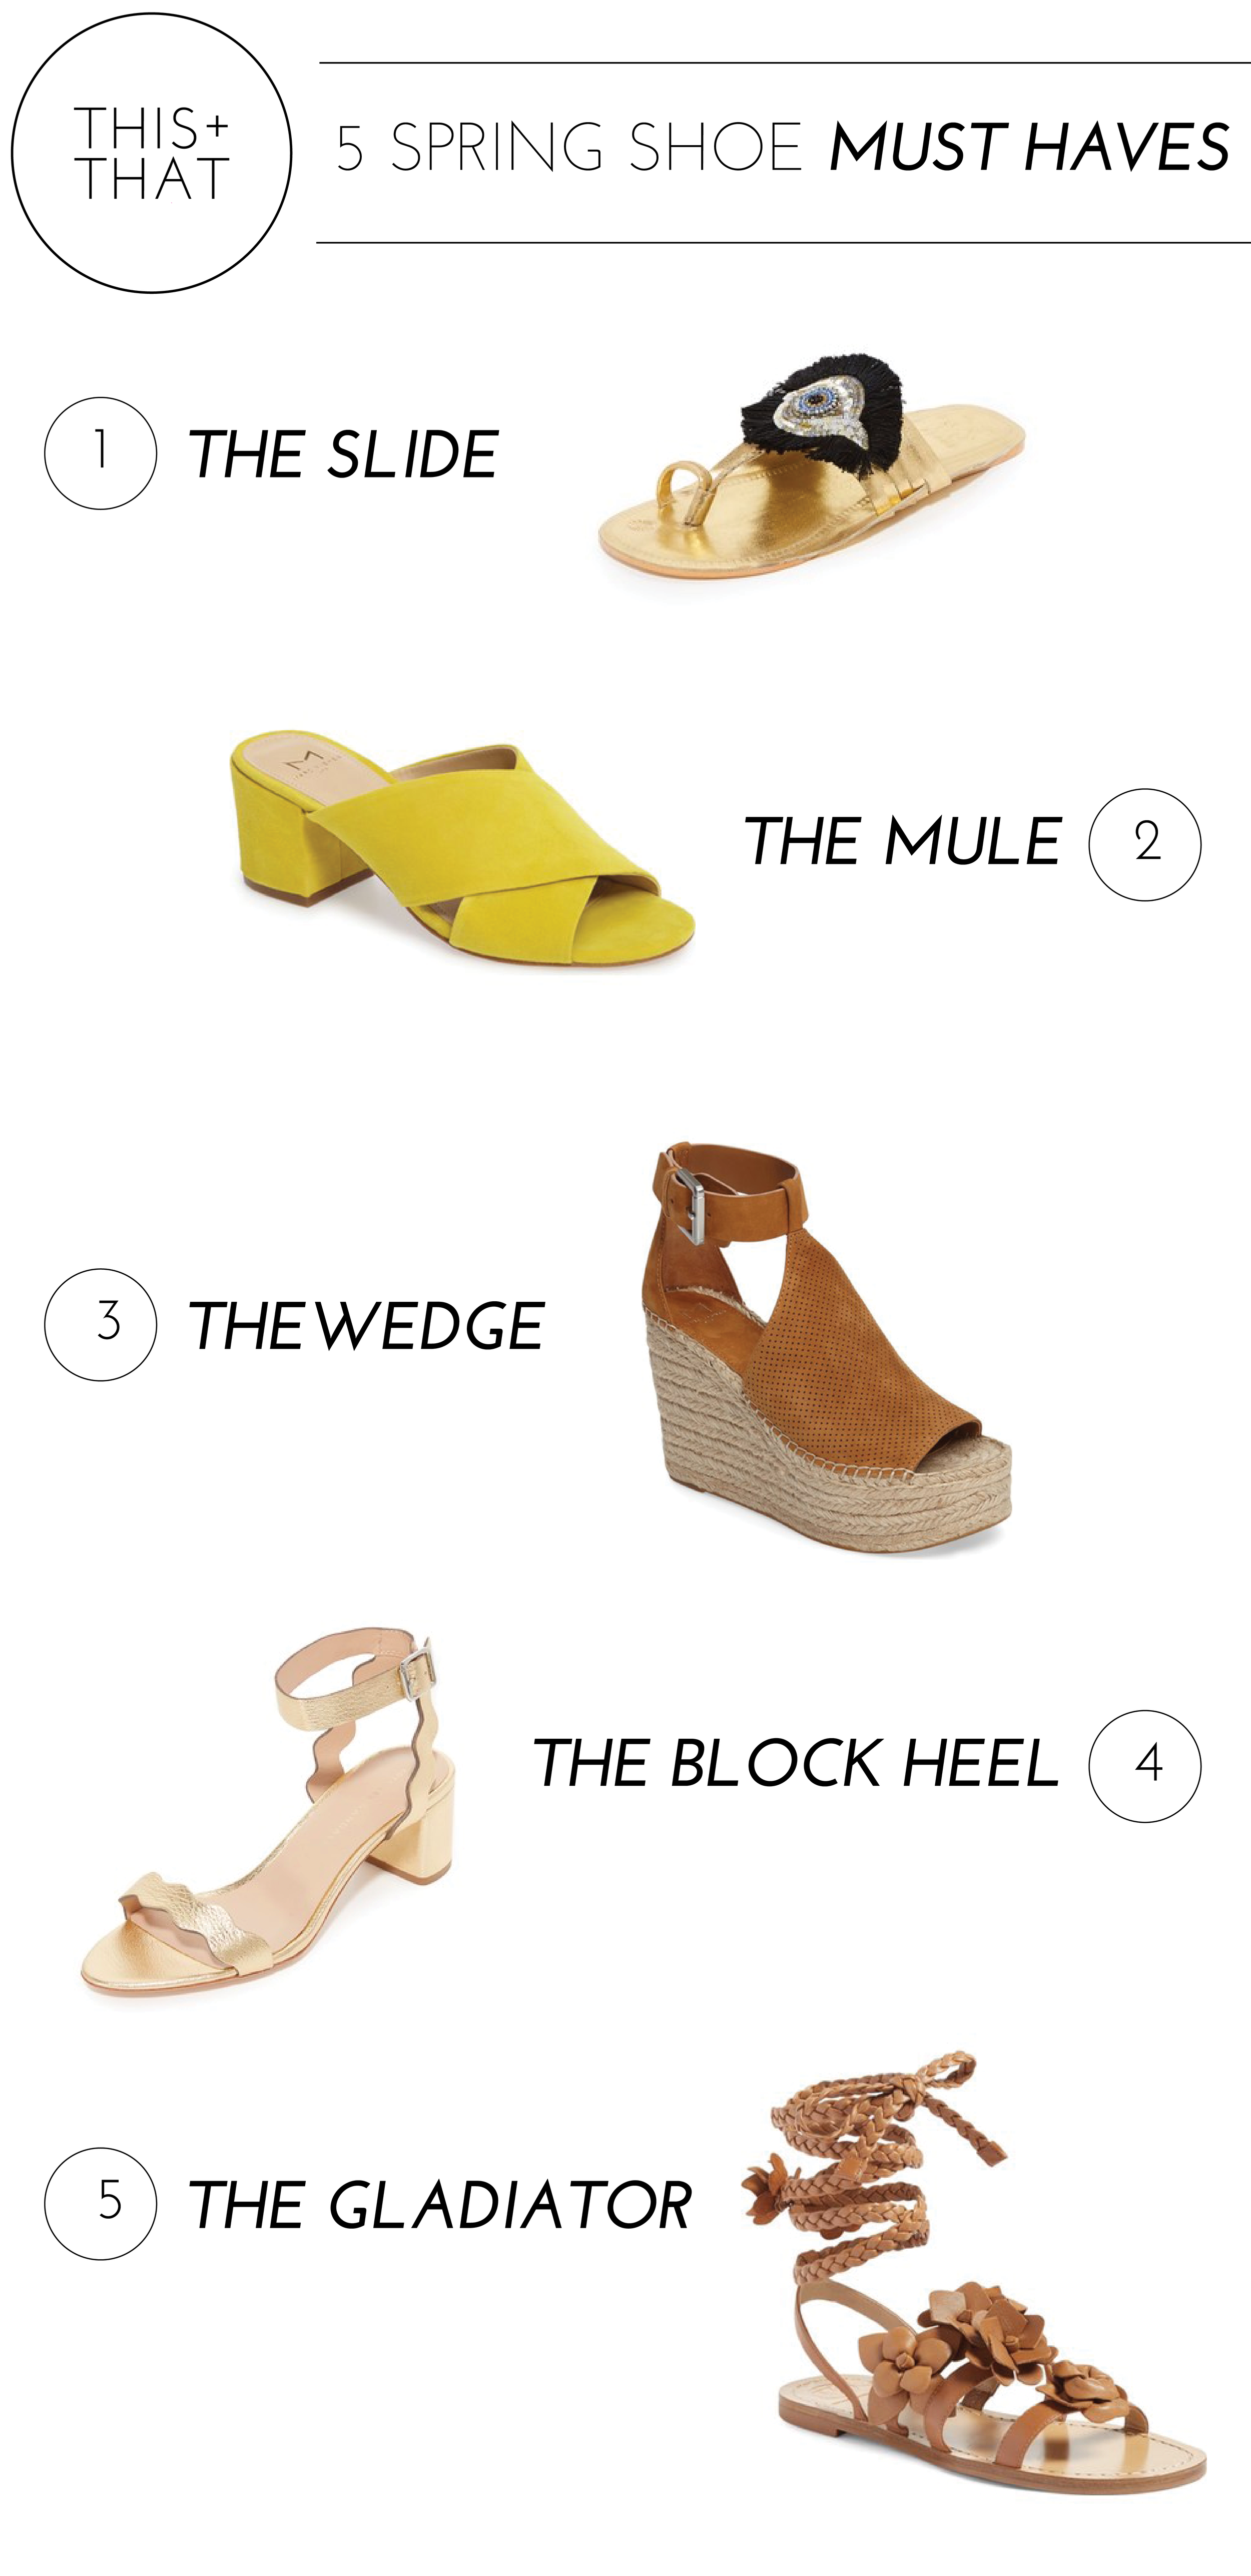 SHOP THE POST BELOW:     ONE   |  TWO  |  THREE  |  FOUR  |  FIVE